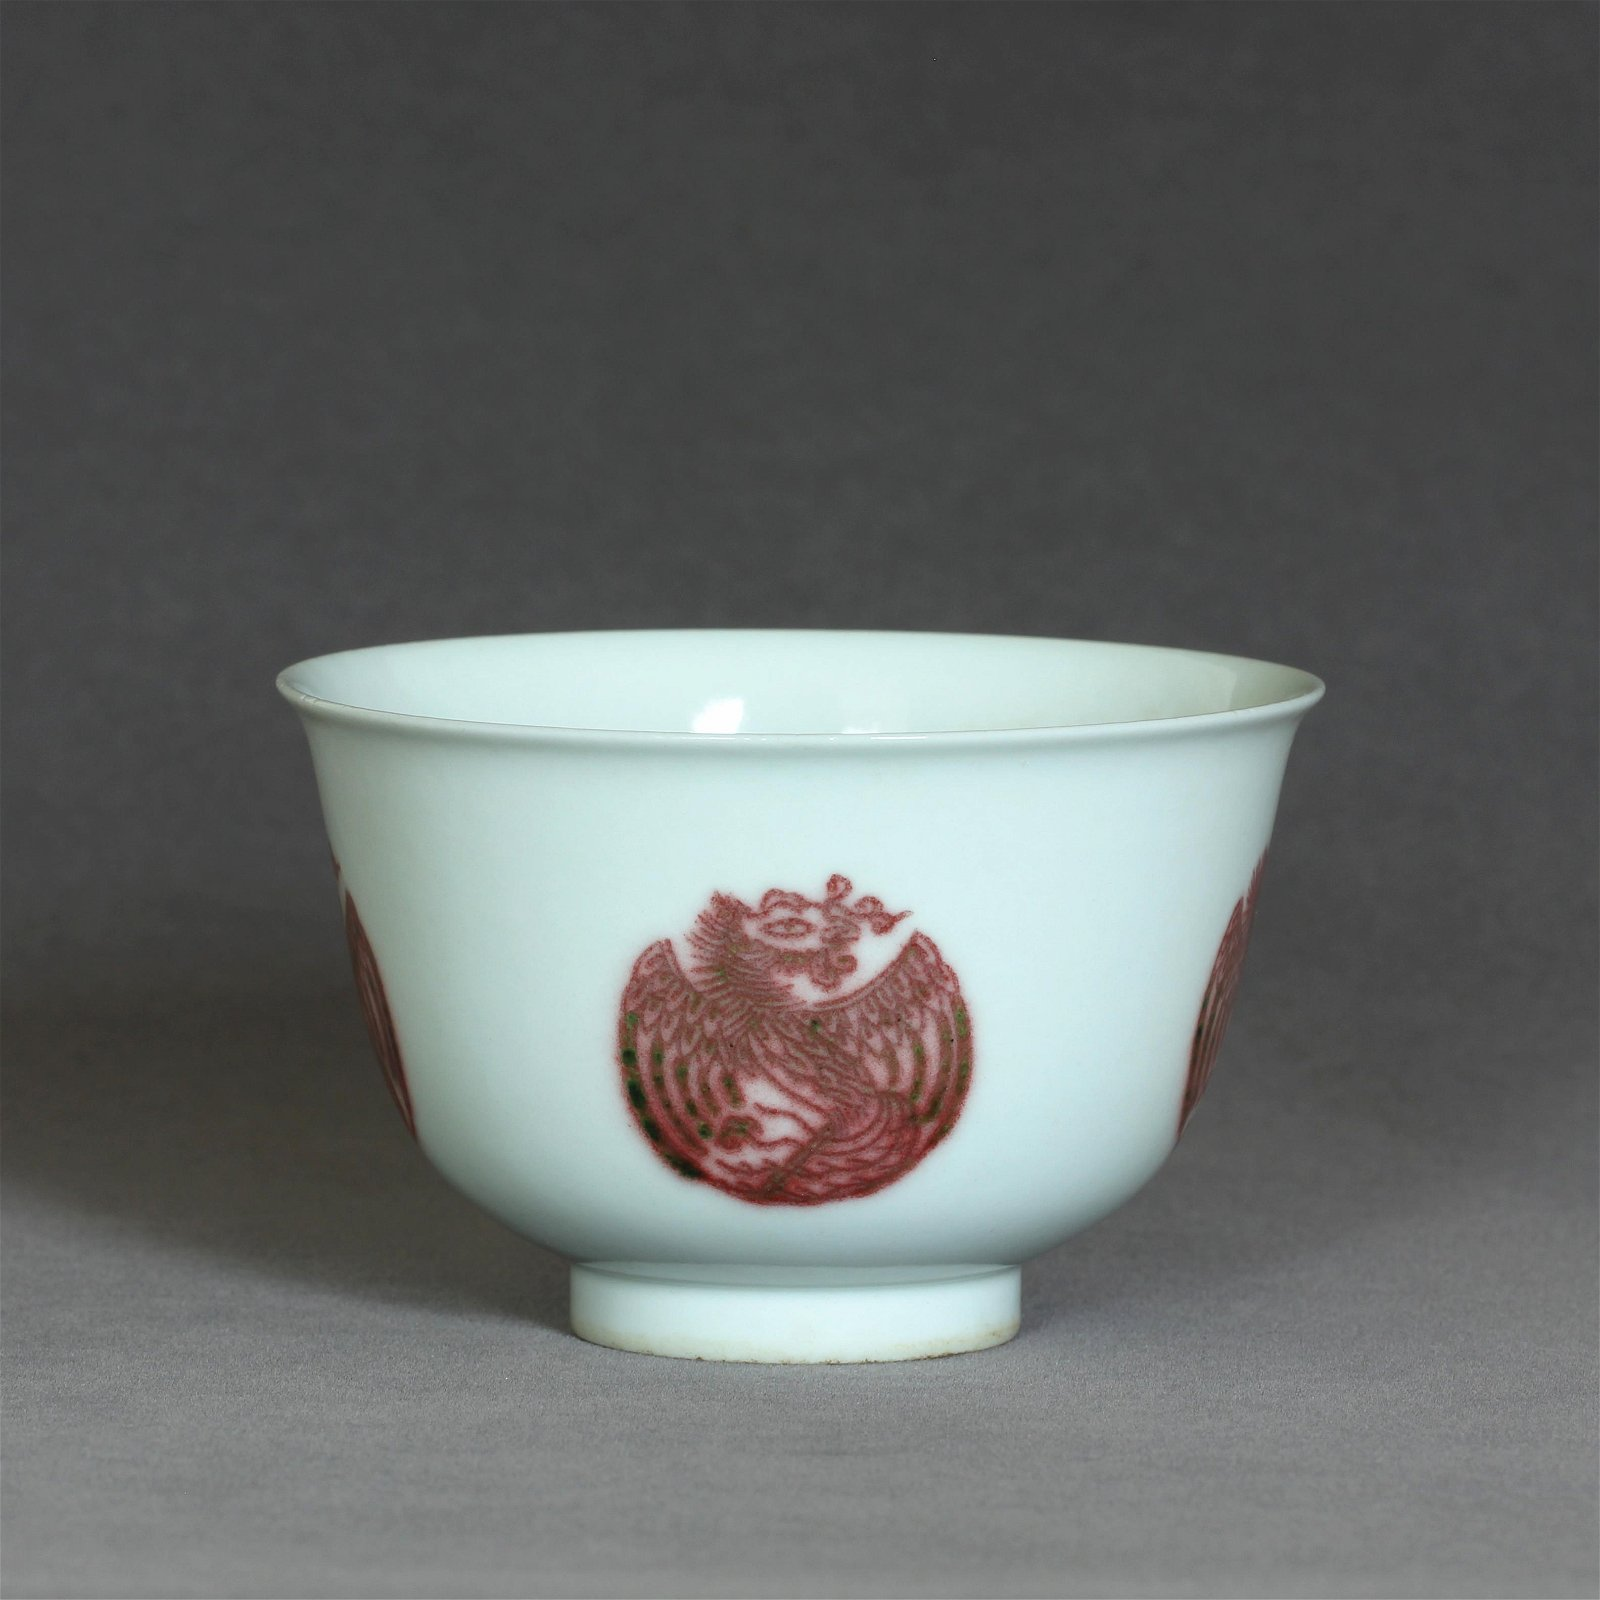 A Chinese Underglaze Red Porcelain Bowl Qing Dynasty